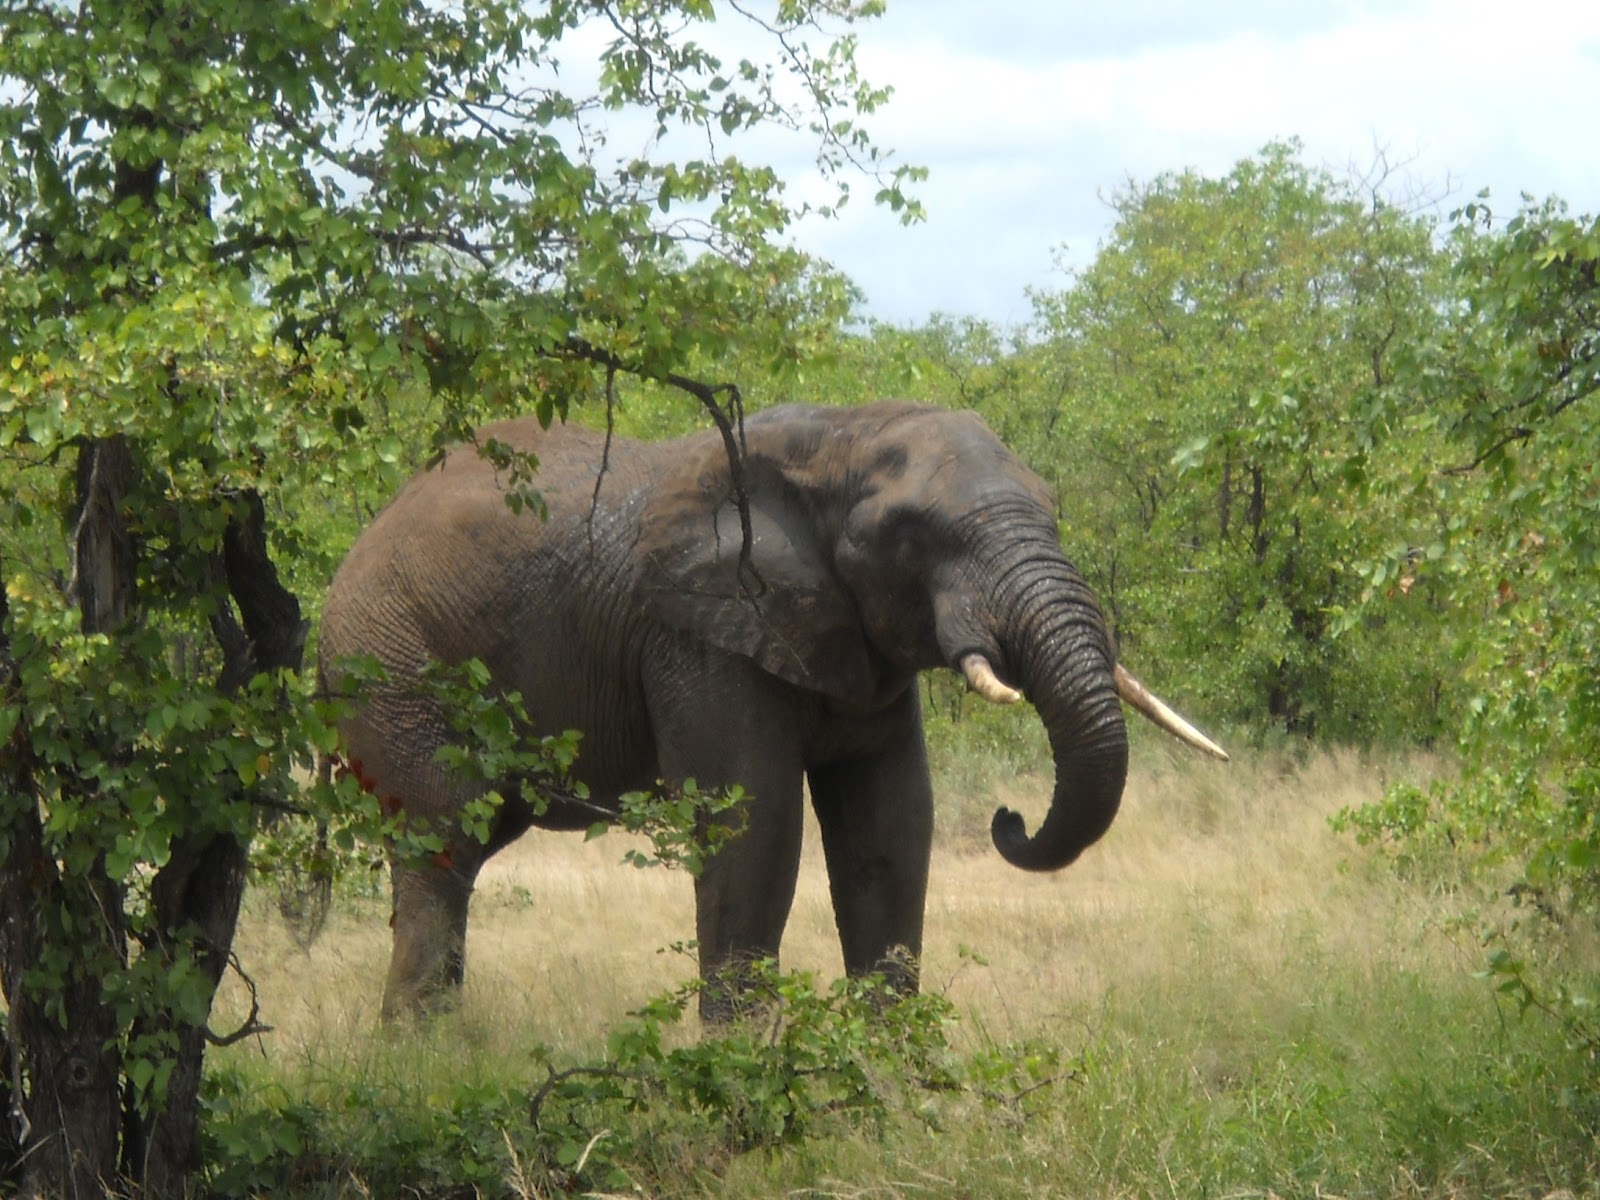 the african bush elephant The african forest elephant is one of two elephant subspecies found on the african continent although the african forest elephant is slightly smaller than the african bush elephant, it is still one of the largest animals found on land today.